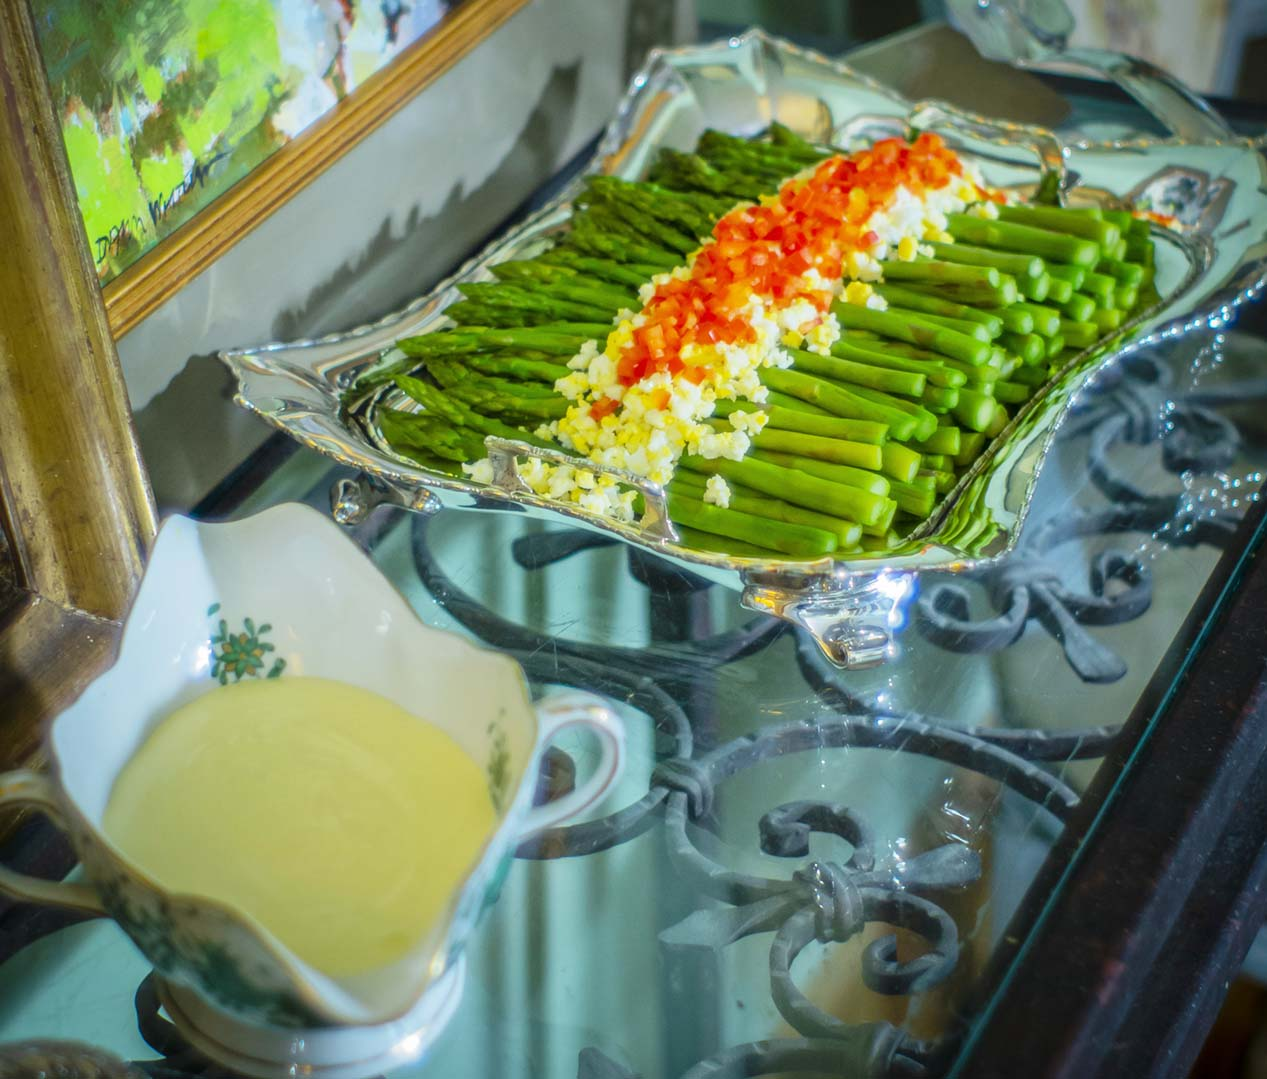 """Steamed asparagus in a Sterling Asparagus Tray by Tiffany & Co, with a side of hollandaise sauce in a Herend """"Indian Basket"""" Green gravy boat, both from Replacements Ltd"""